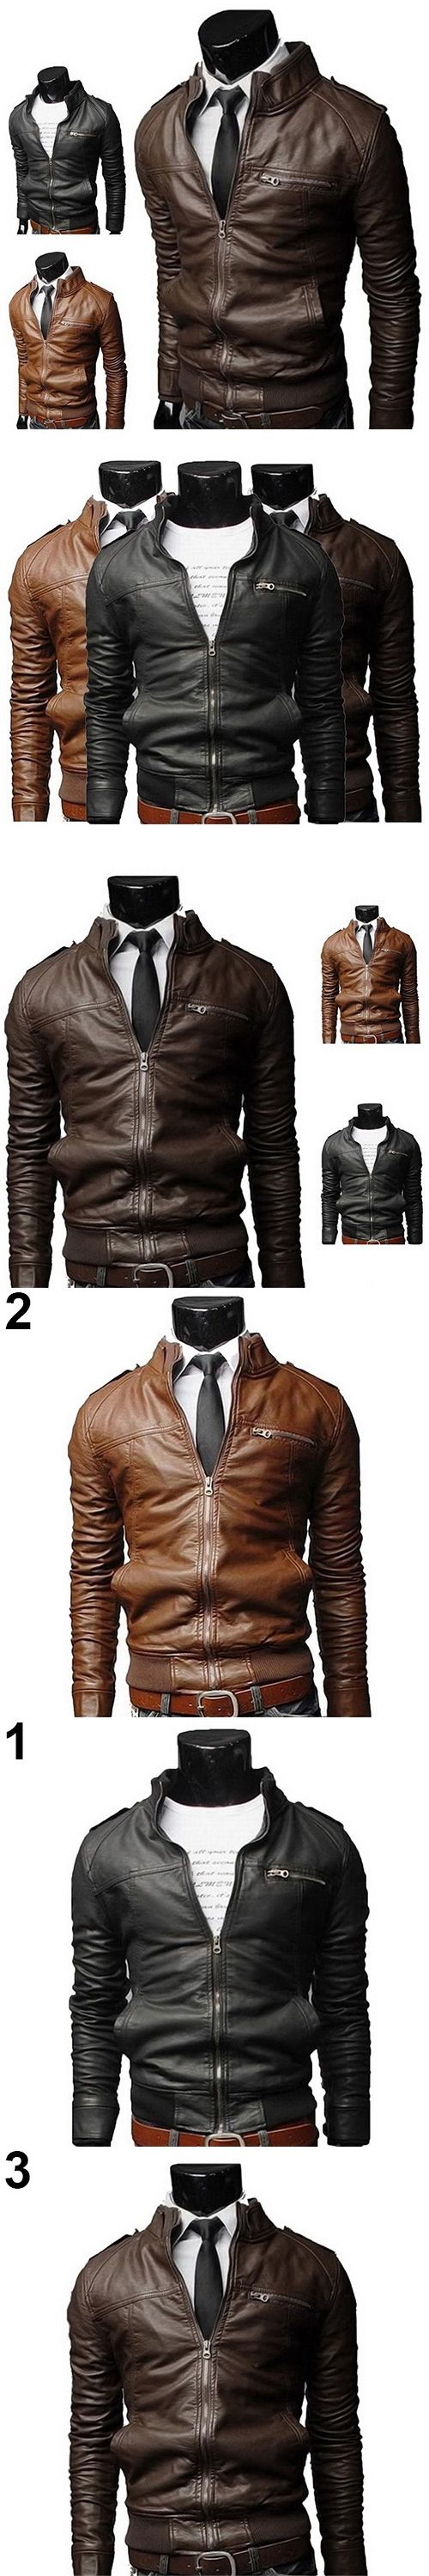 Men's Fashion Cool Stand Collar Slim Motorcycle Faux Leather Coat Outwear Jacket